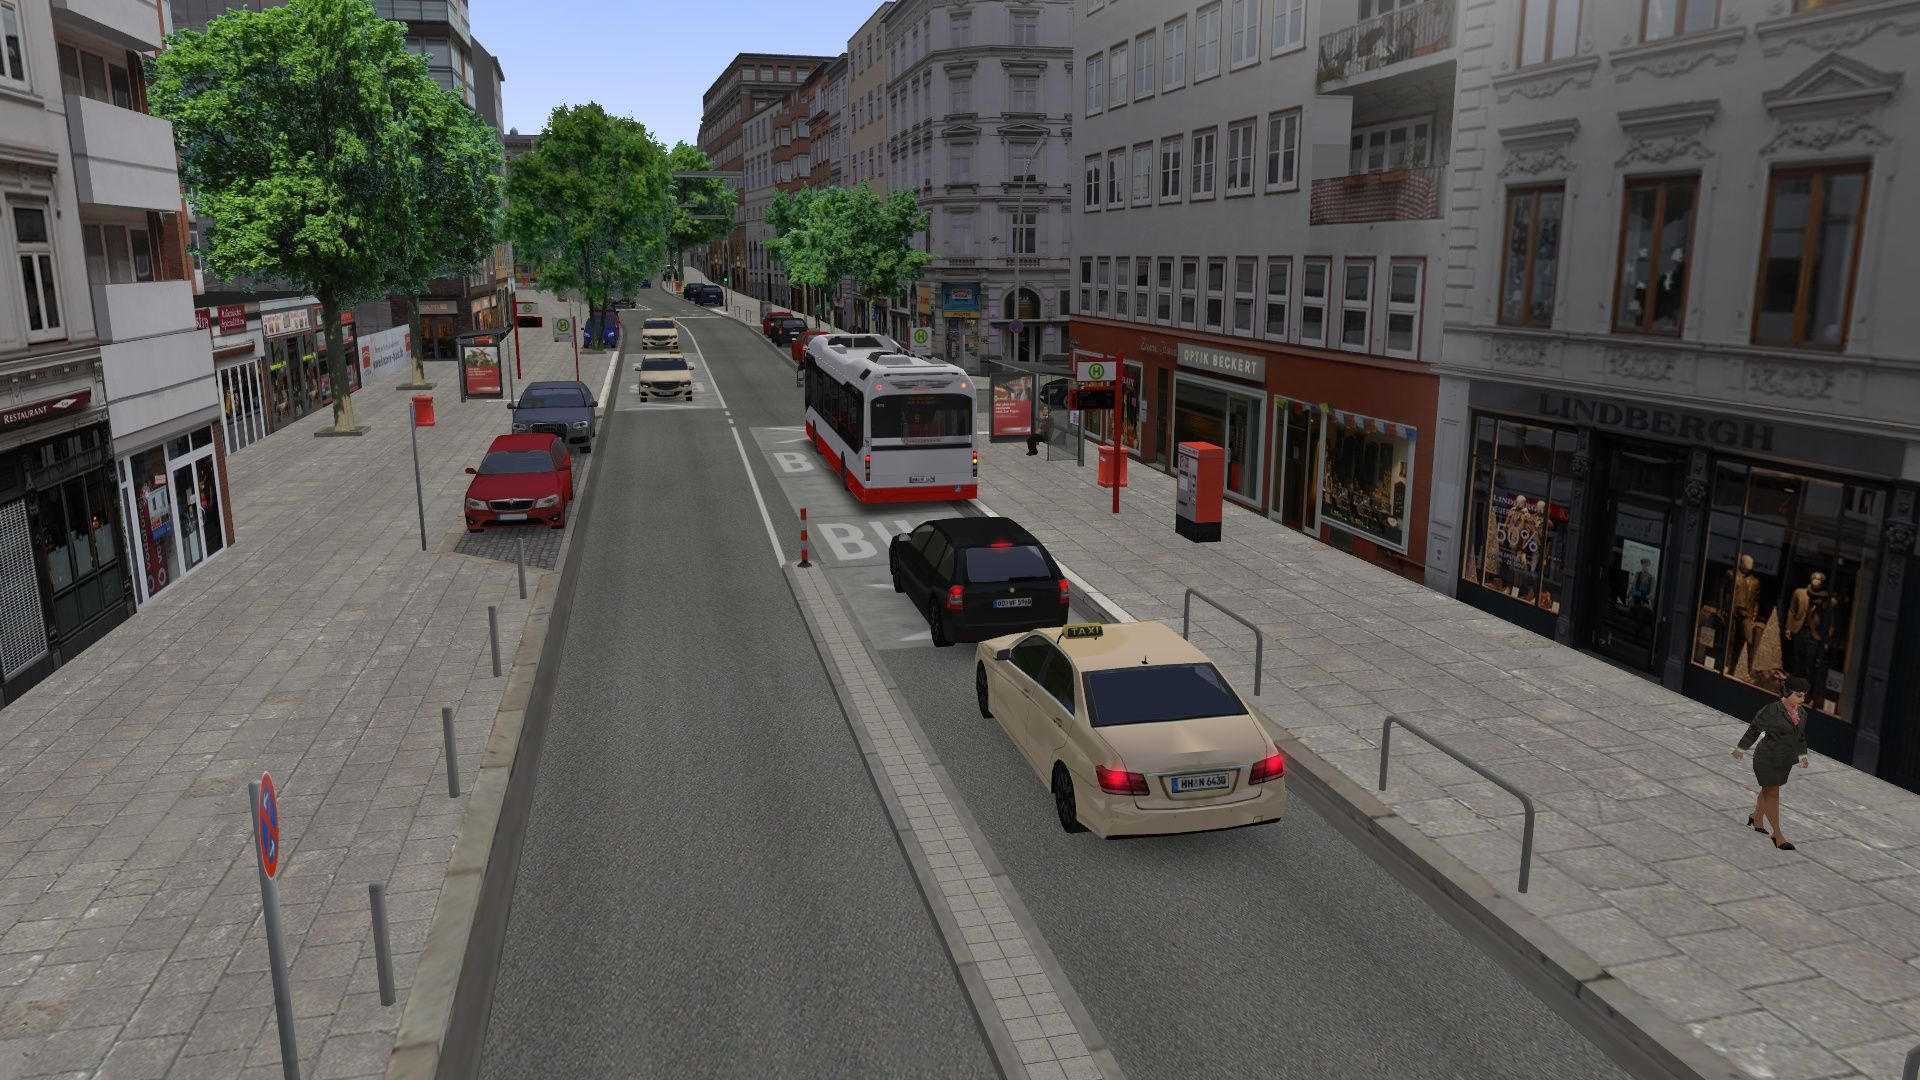 Omsi Addon Hamburg Download Free - dedalcreation